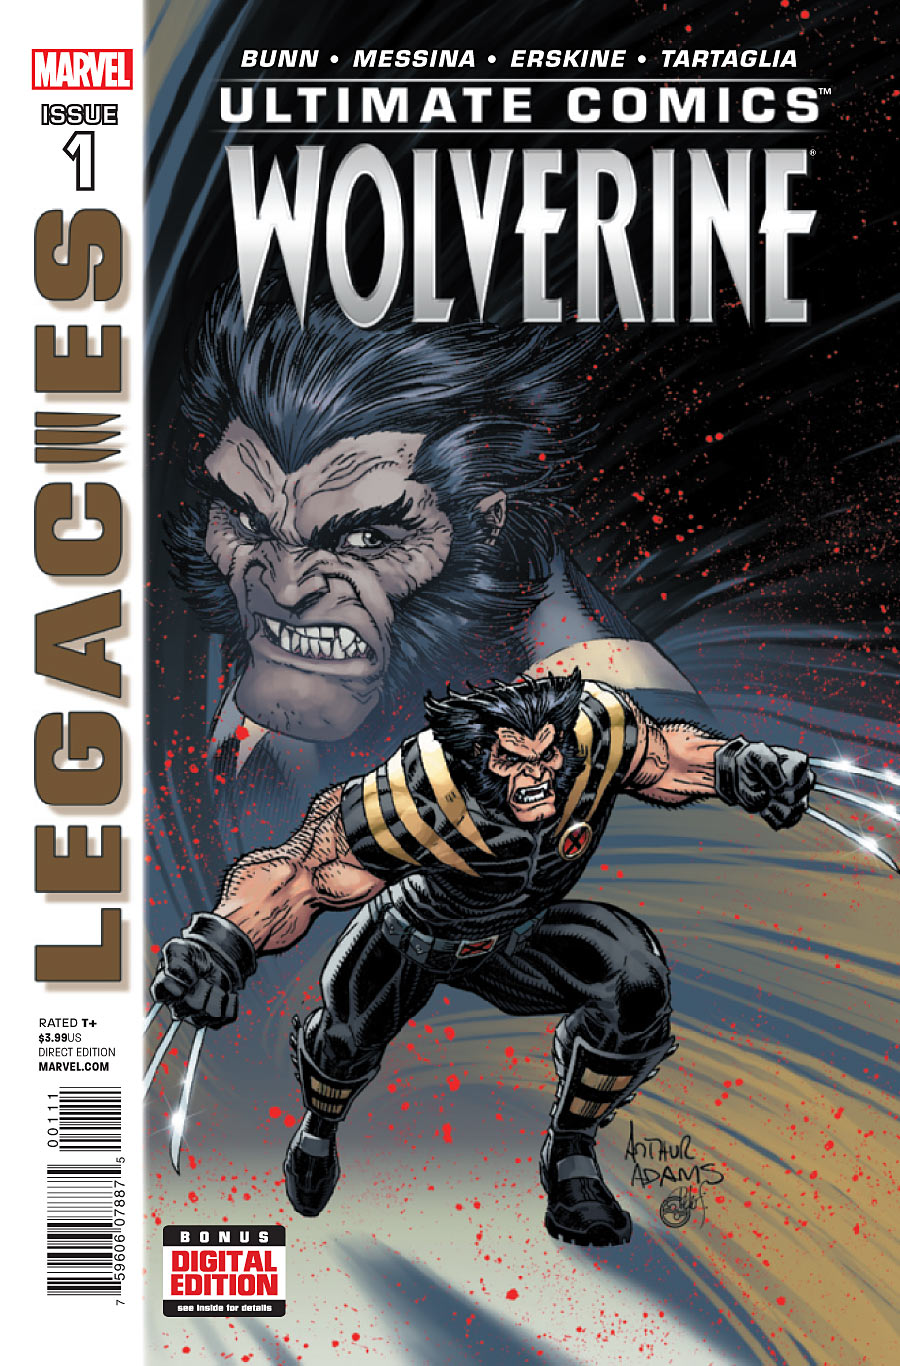 Ultimate Comics Wolverine #1 cover by Arthur Adams